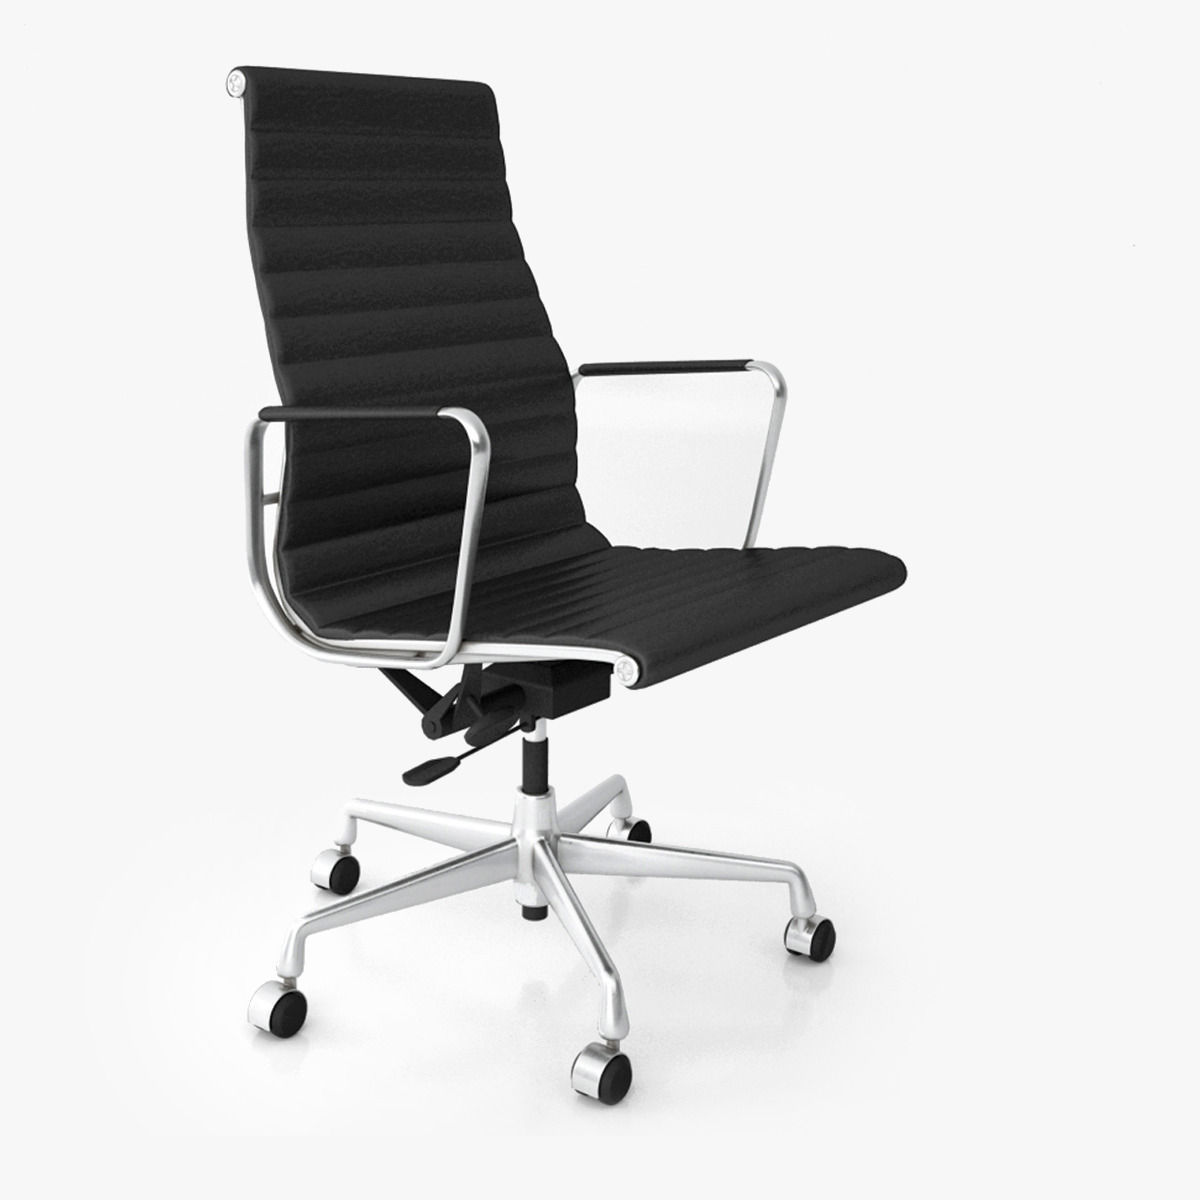 Eames Alu Chair Vitra Aluminium Office Chair Ea 119 3d Model Max Obj Fbx